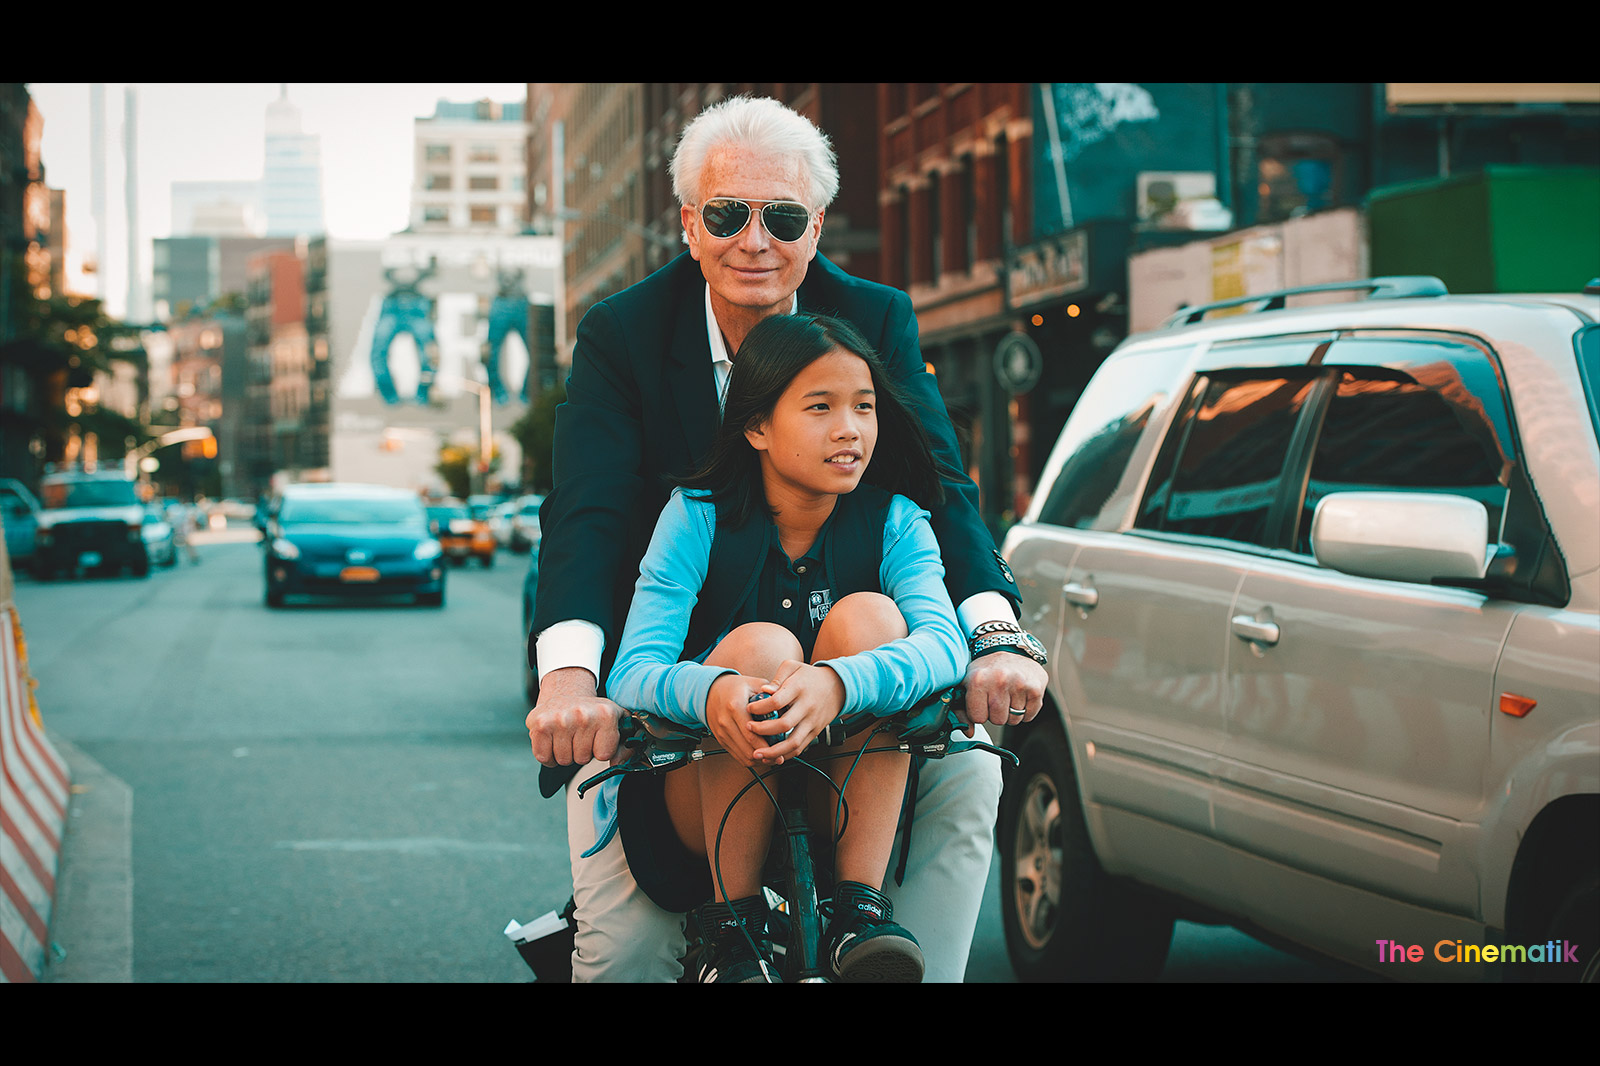 White Grandpa carrying his cute asian granddaughter on his bike in New York cinematic photograph by Kamal Lahmadi/THE CINEMATIK